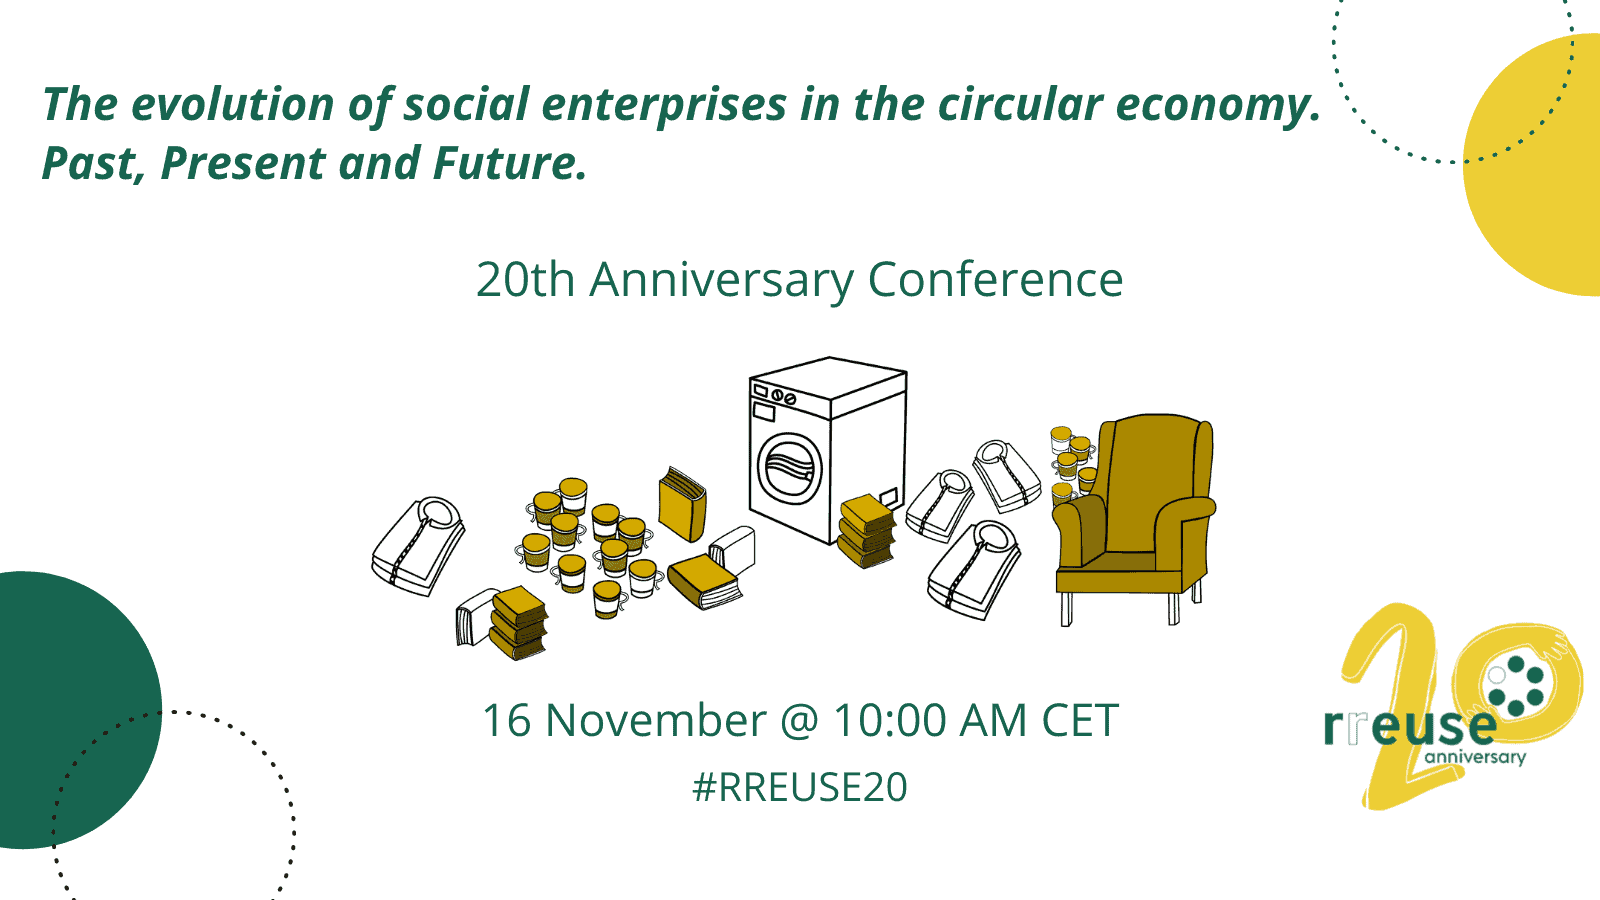 20th Anniversary Conference: The evolution of social enterprises in the circular economy. Past, Present and Future